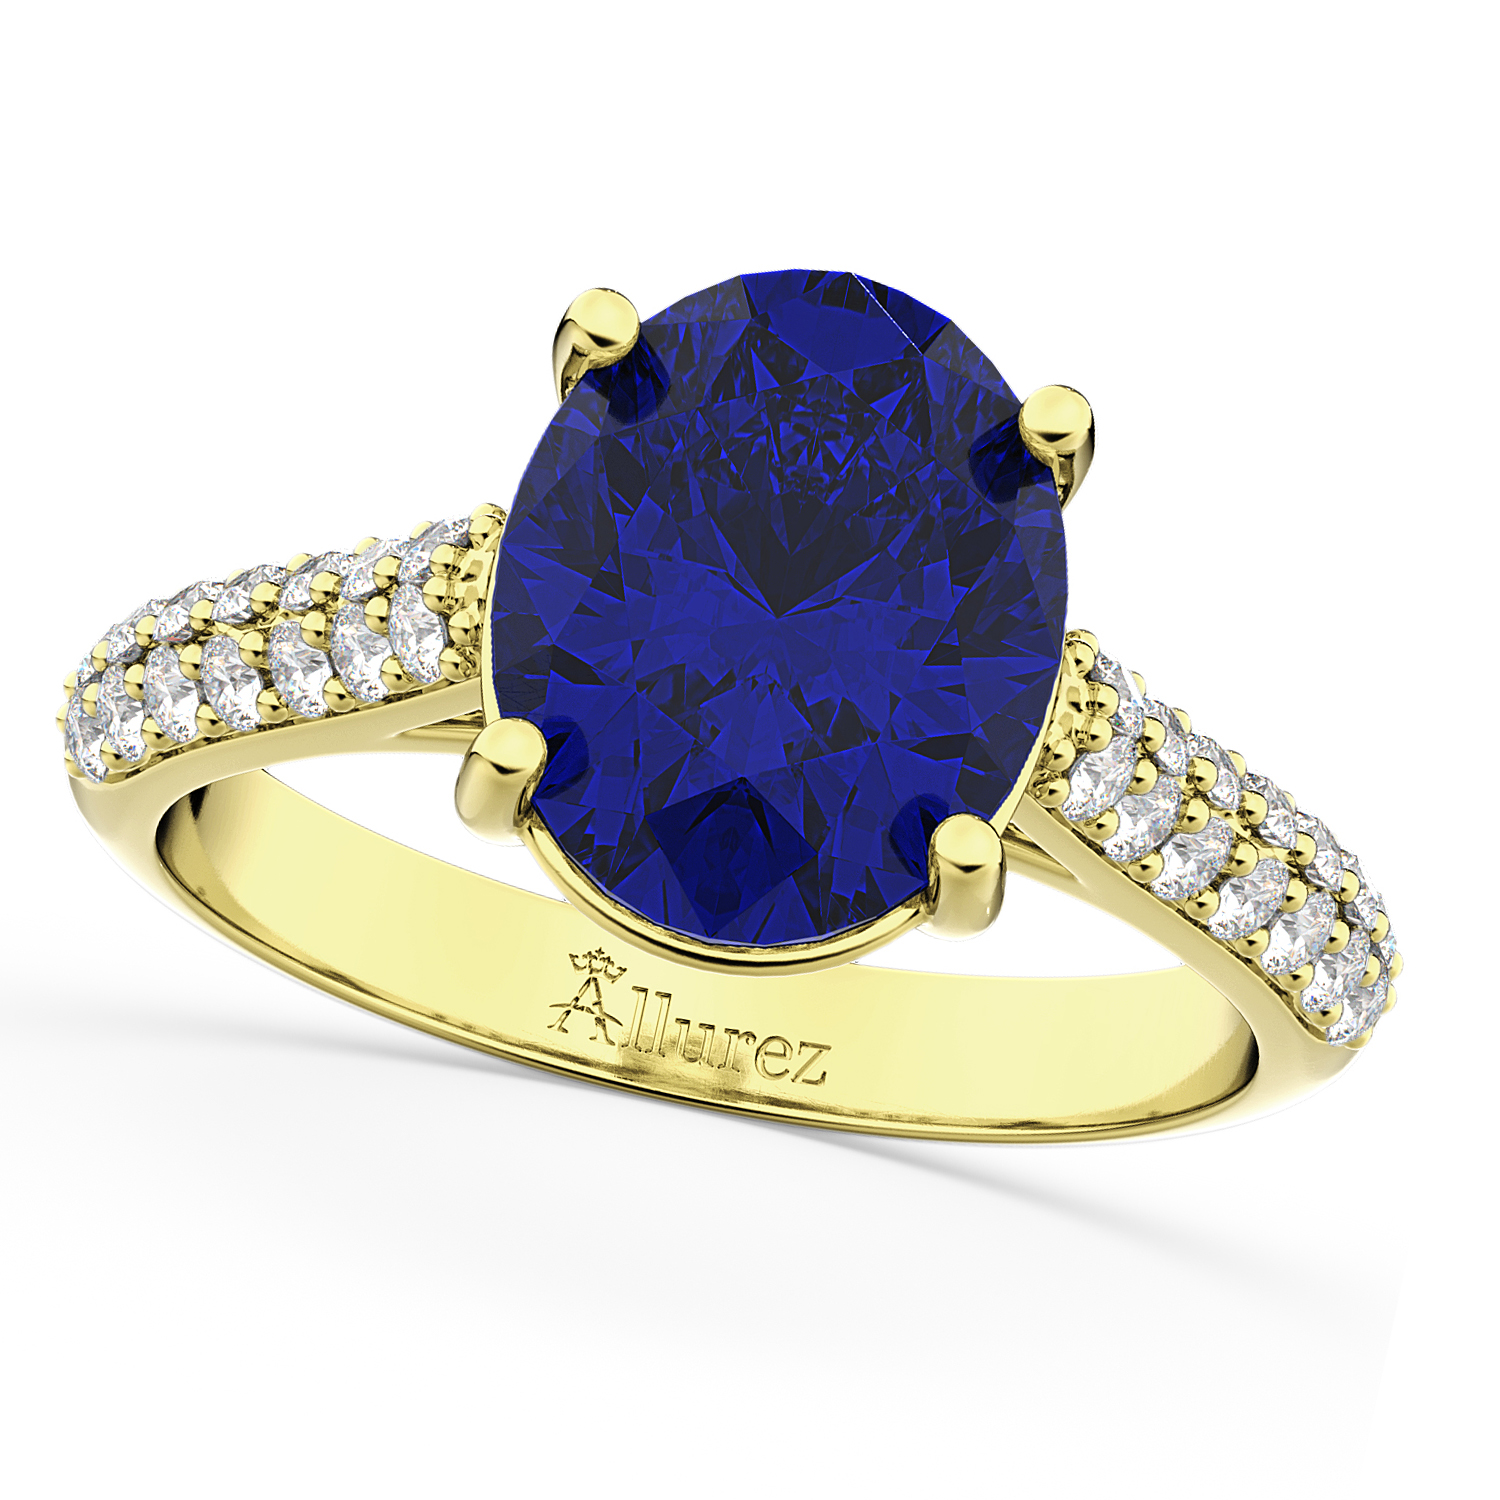 Oval Blue Sapphire & Diamond Engagement Ring 14k Yellow. 14 Carat Engagement Rings. Yachtmaster Watches. White Brooch14 Gold Chains. Urn Lockets. Delicate Stud Earrings. Western Watches. Rectangular Wedding Rings. Granddaughter Lockets